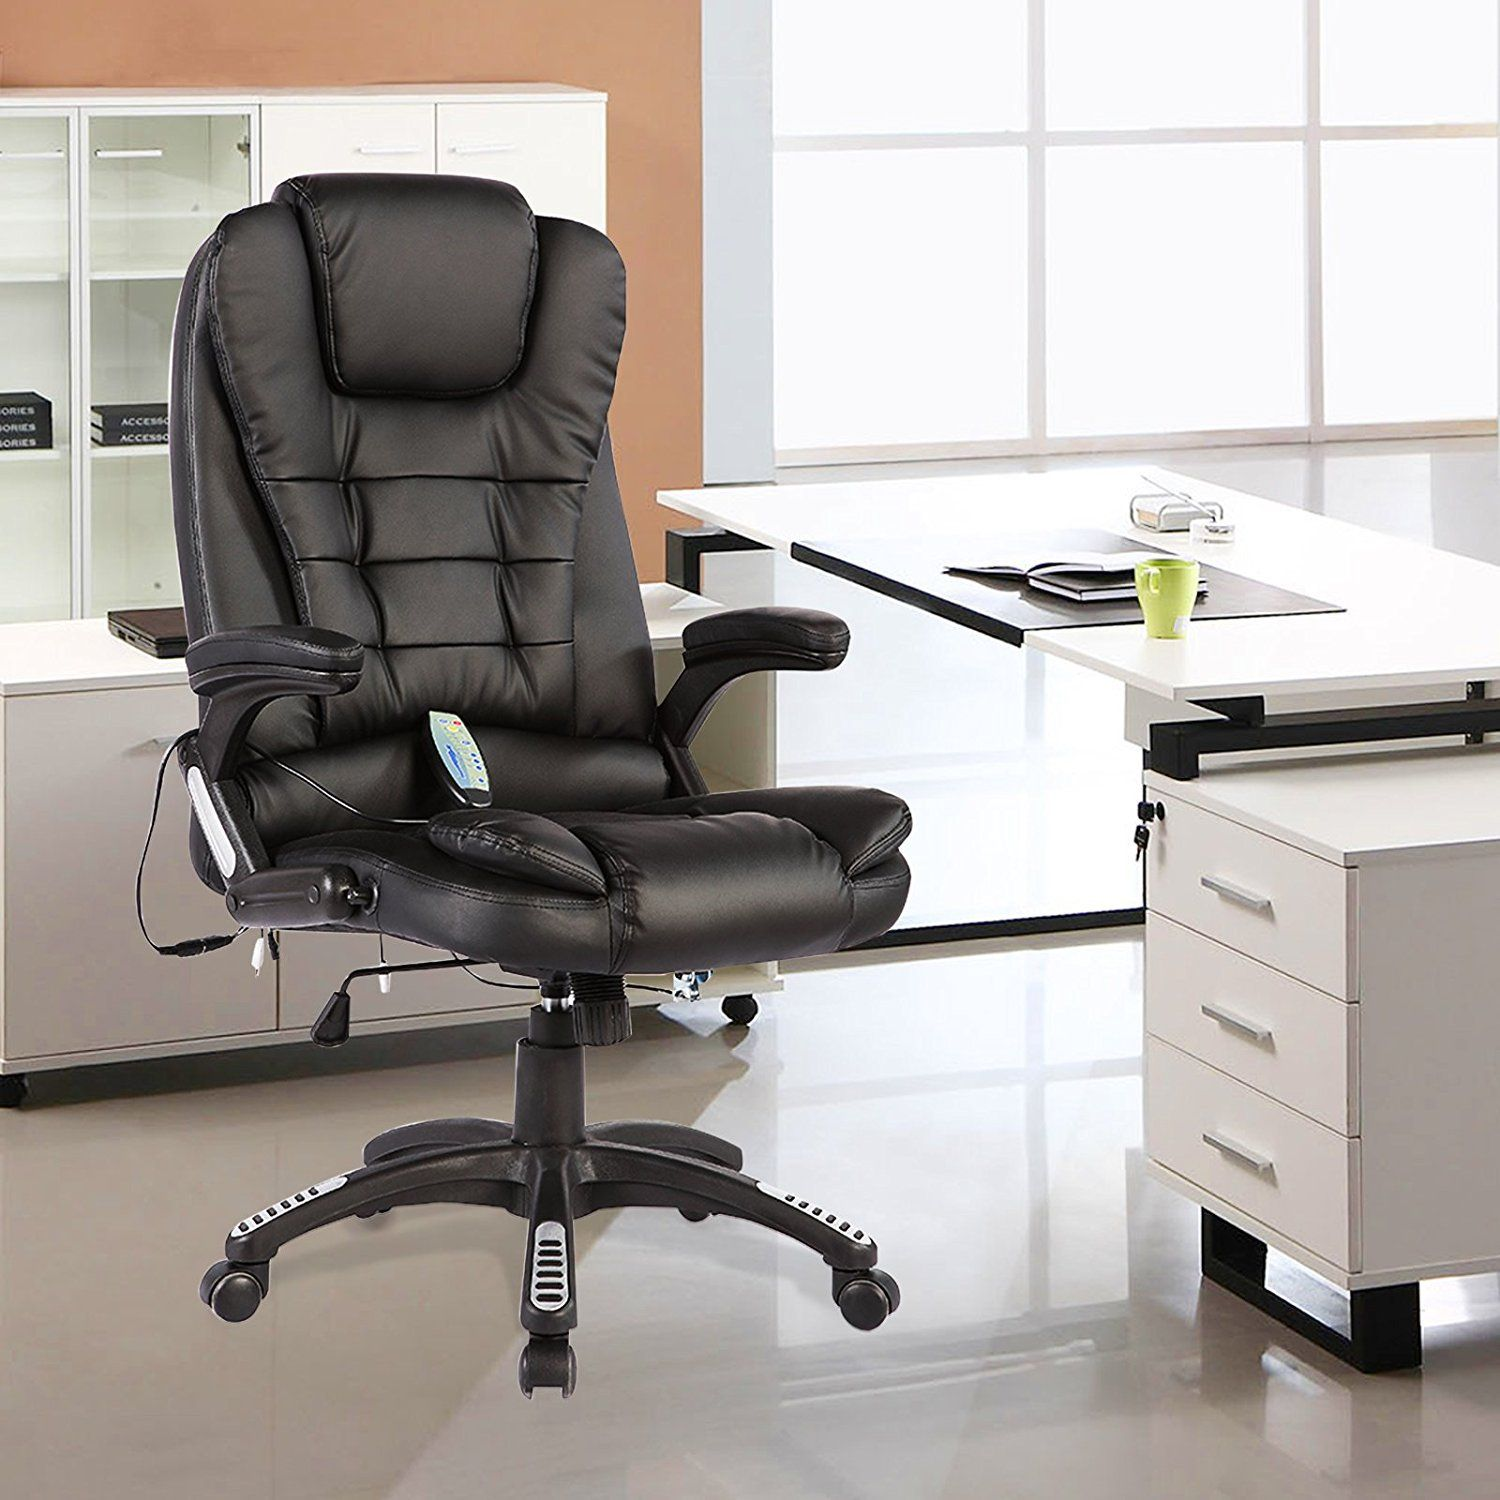 This Executive Ergonomic 6 Point Massage Office Chair Is Providing